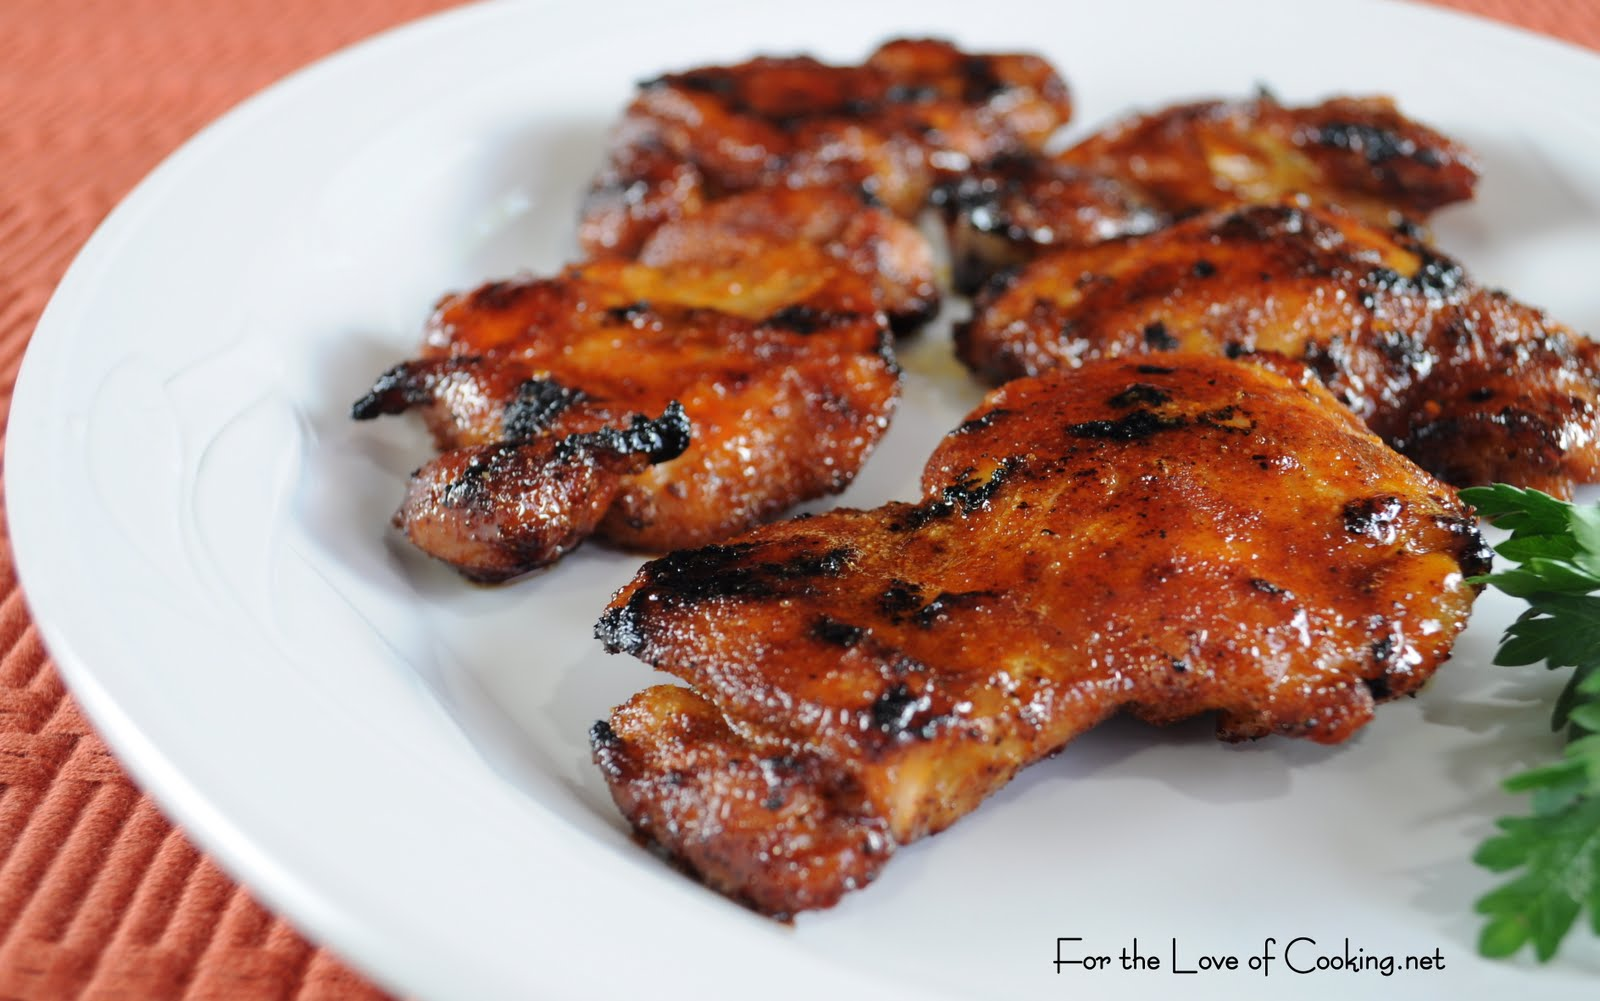 Spicy Honey Brushed Chicken Thighs | For the Love of Cooking